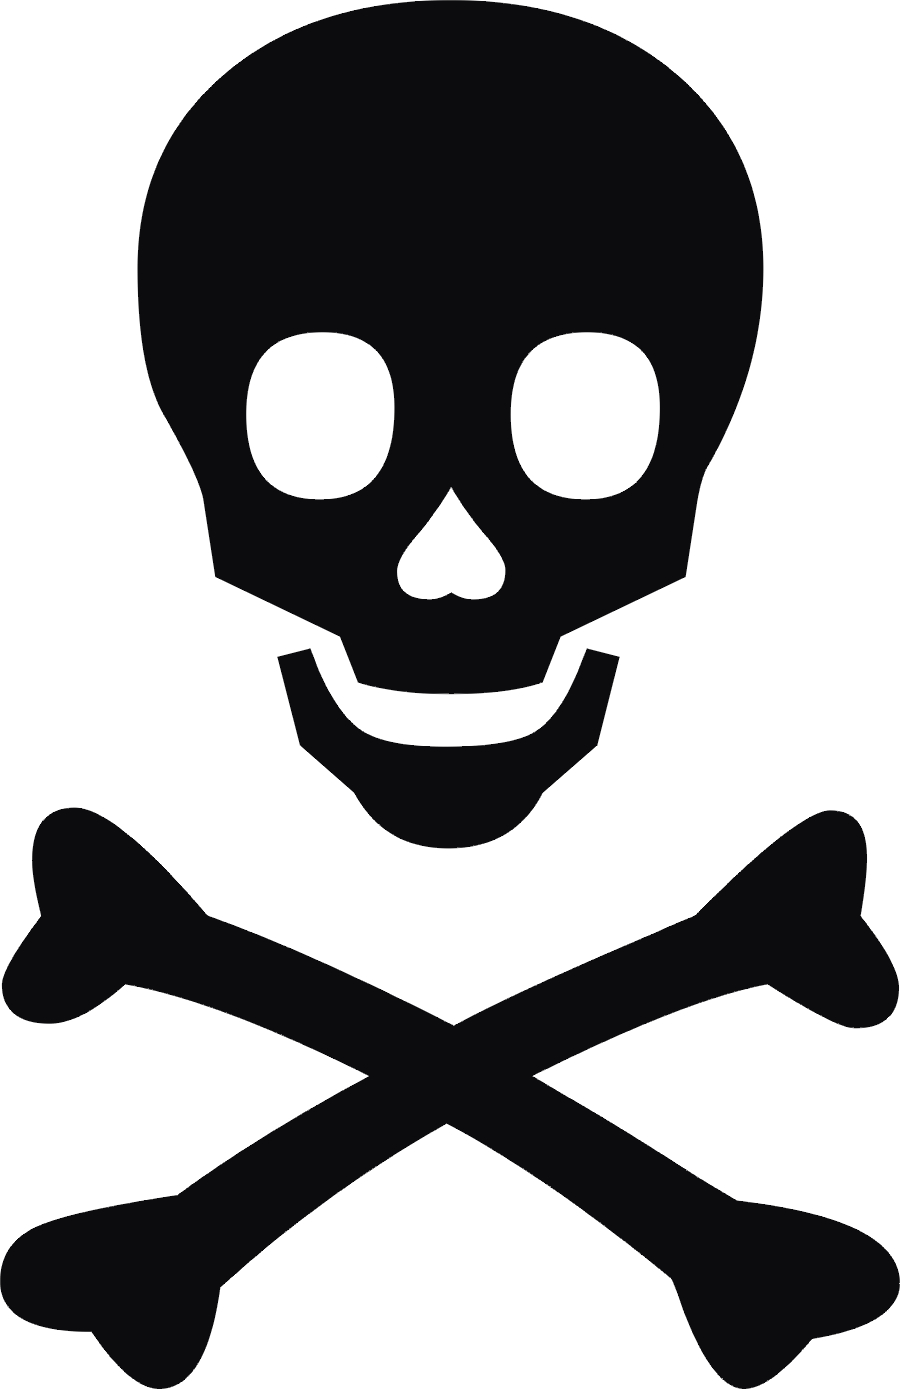 Free Skull And Cross Bones, Download Free Clip Art, Free Clip Art on.